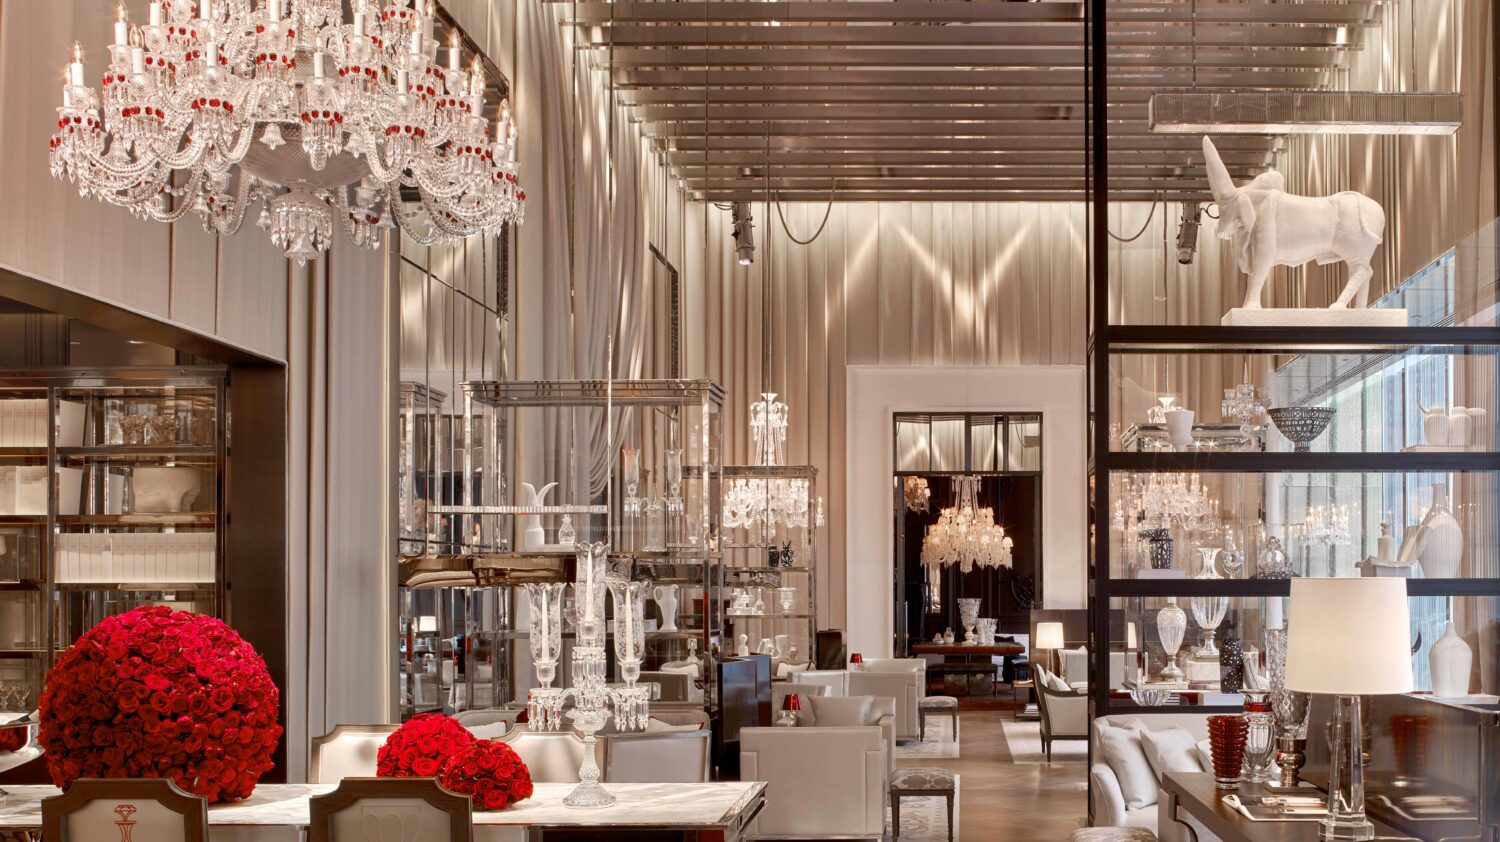 grand salon-baccarat hotel nyc